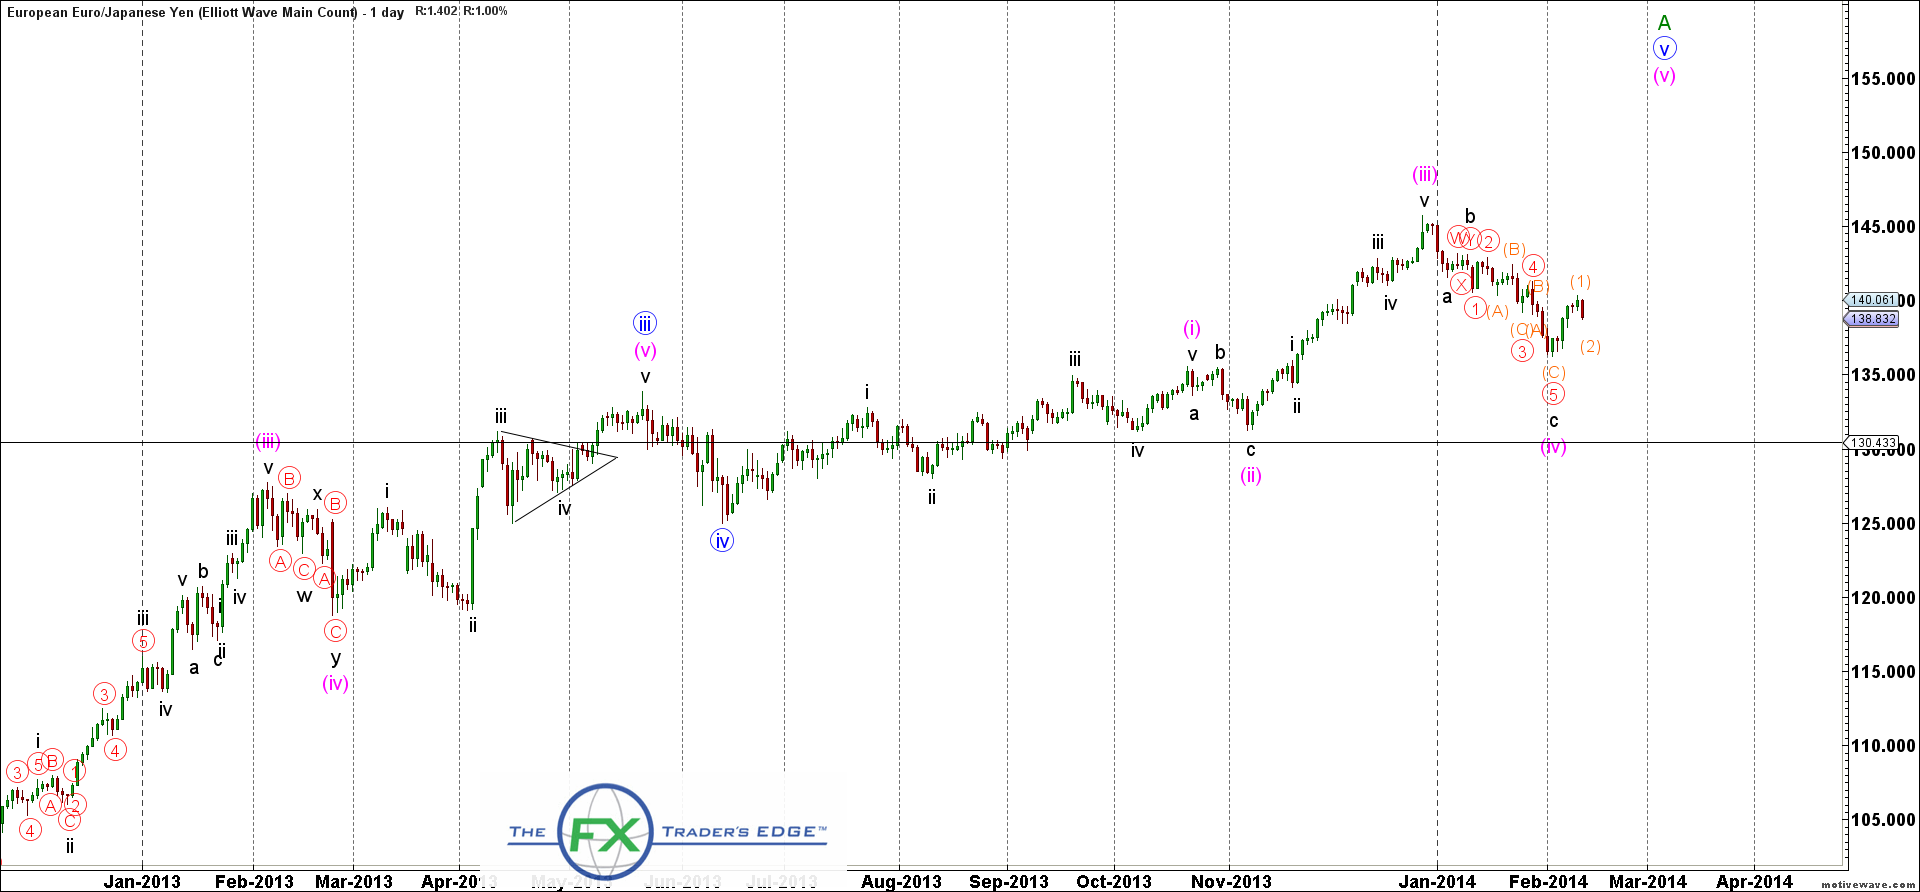 EURJPY-Elliott-Wave-Main-Count-Feb-12-0828-AM-1-day